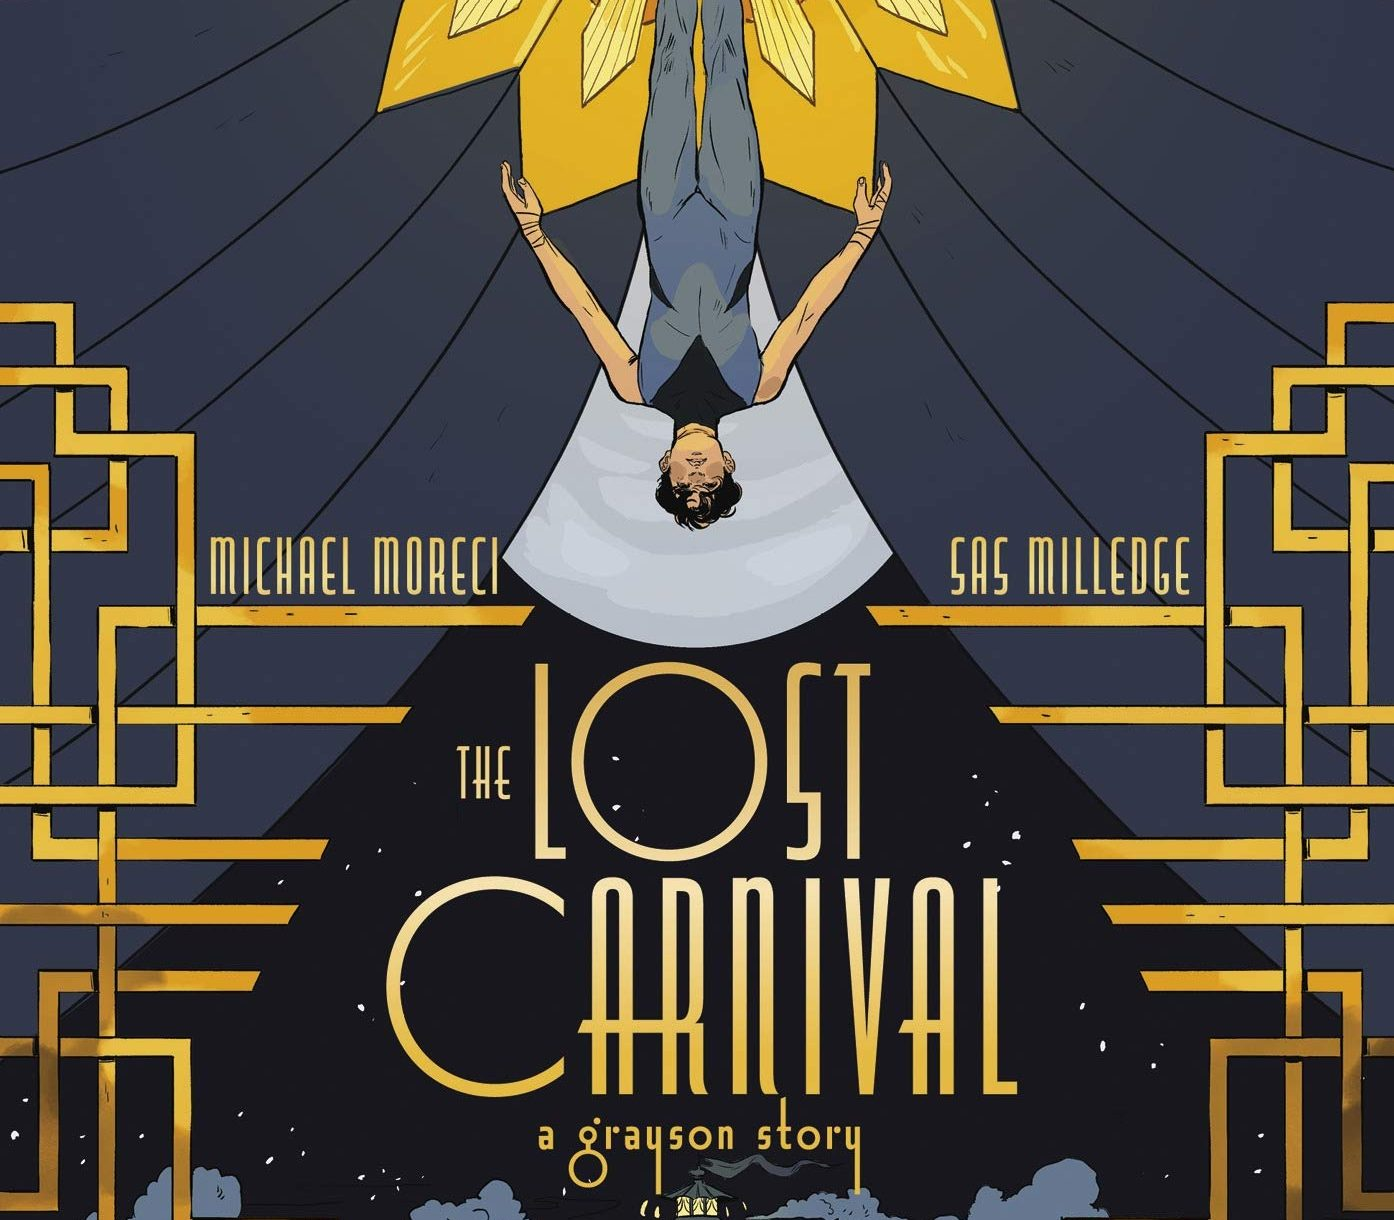 'The Lost Carnival' TPB review